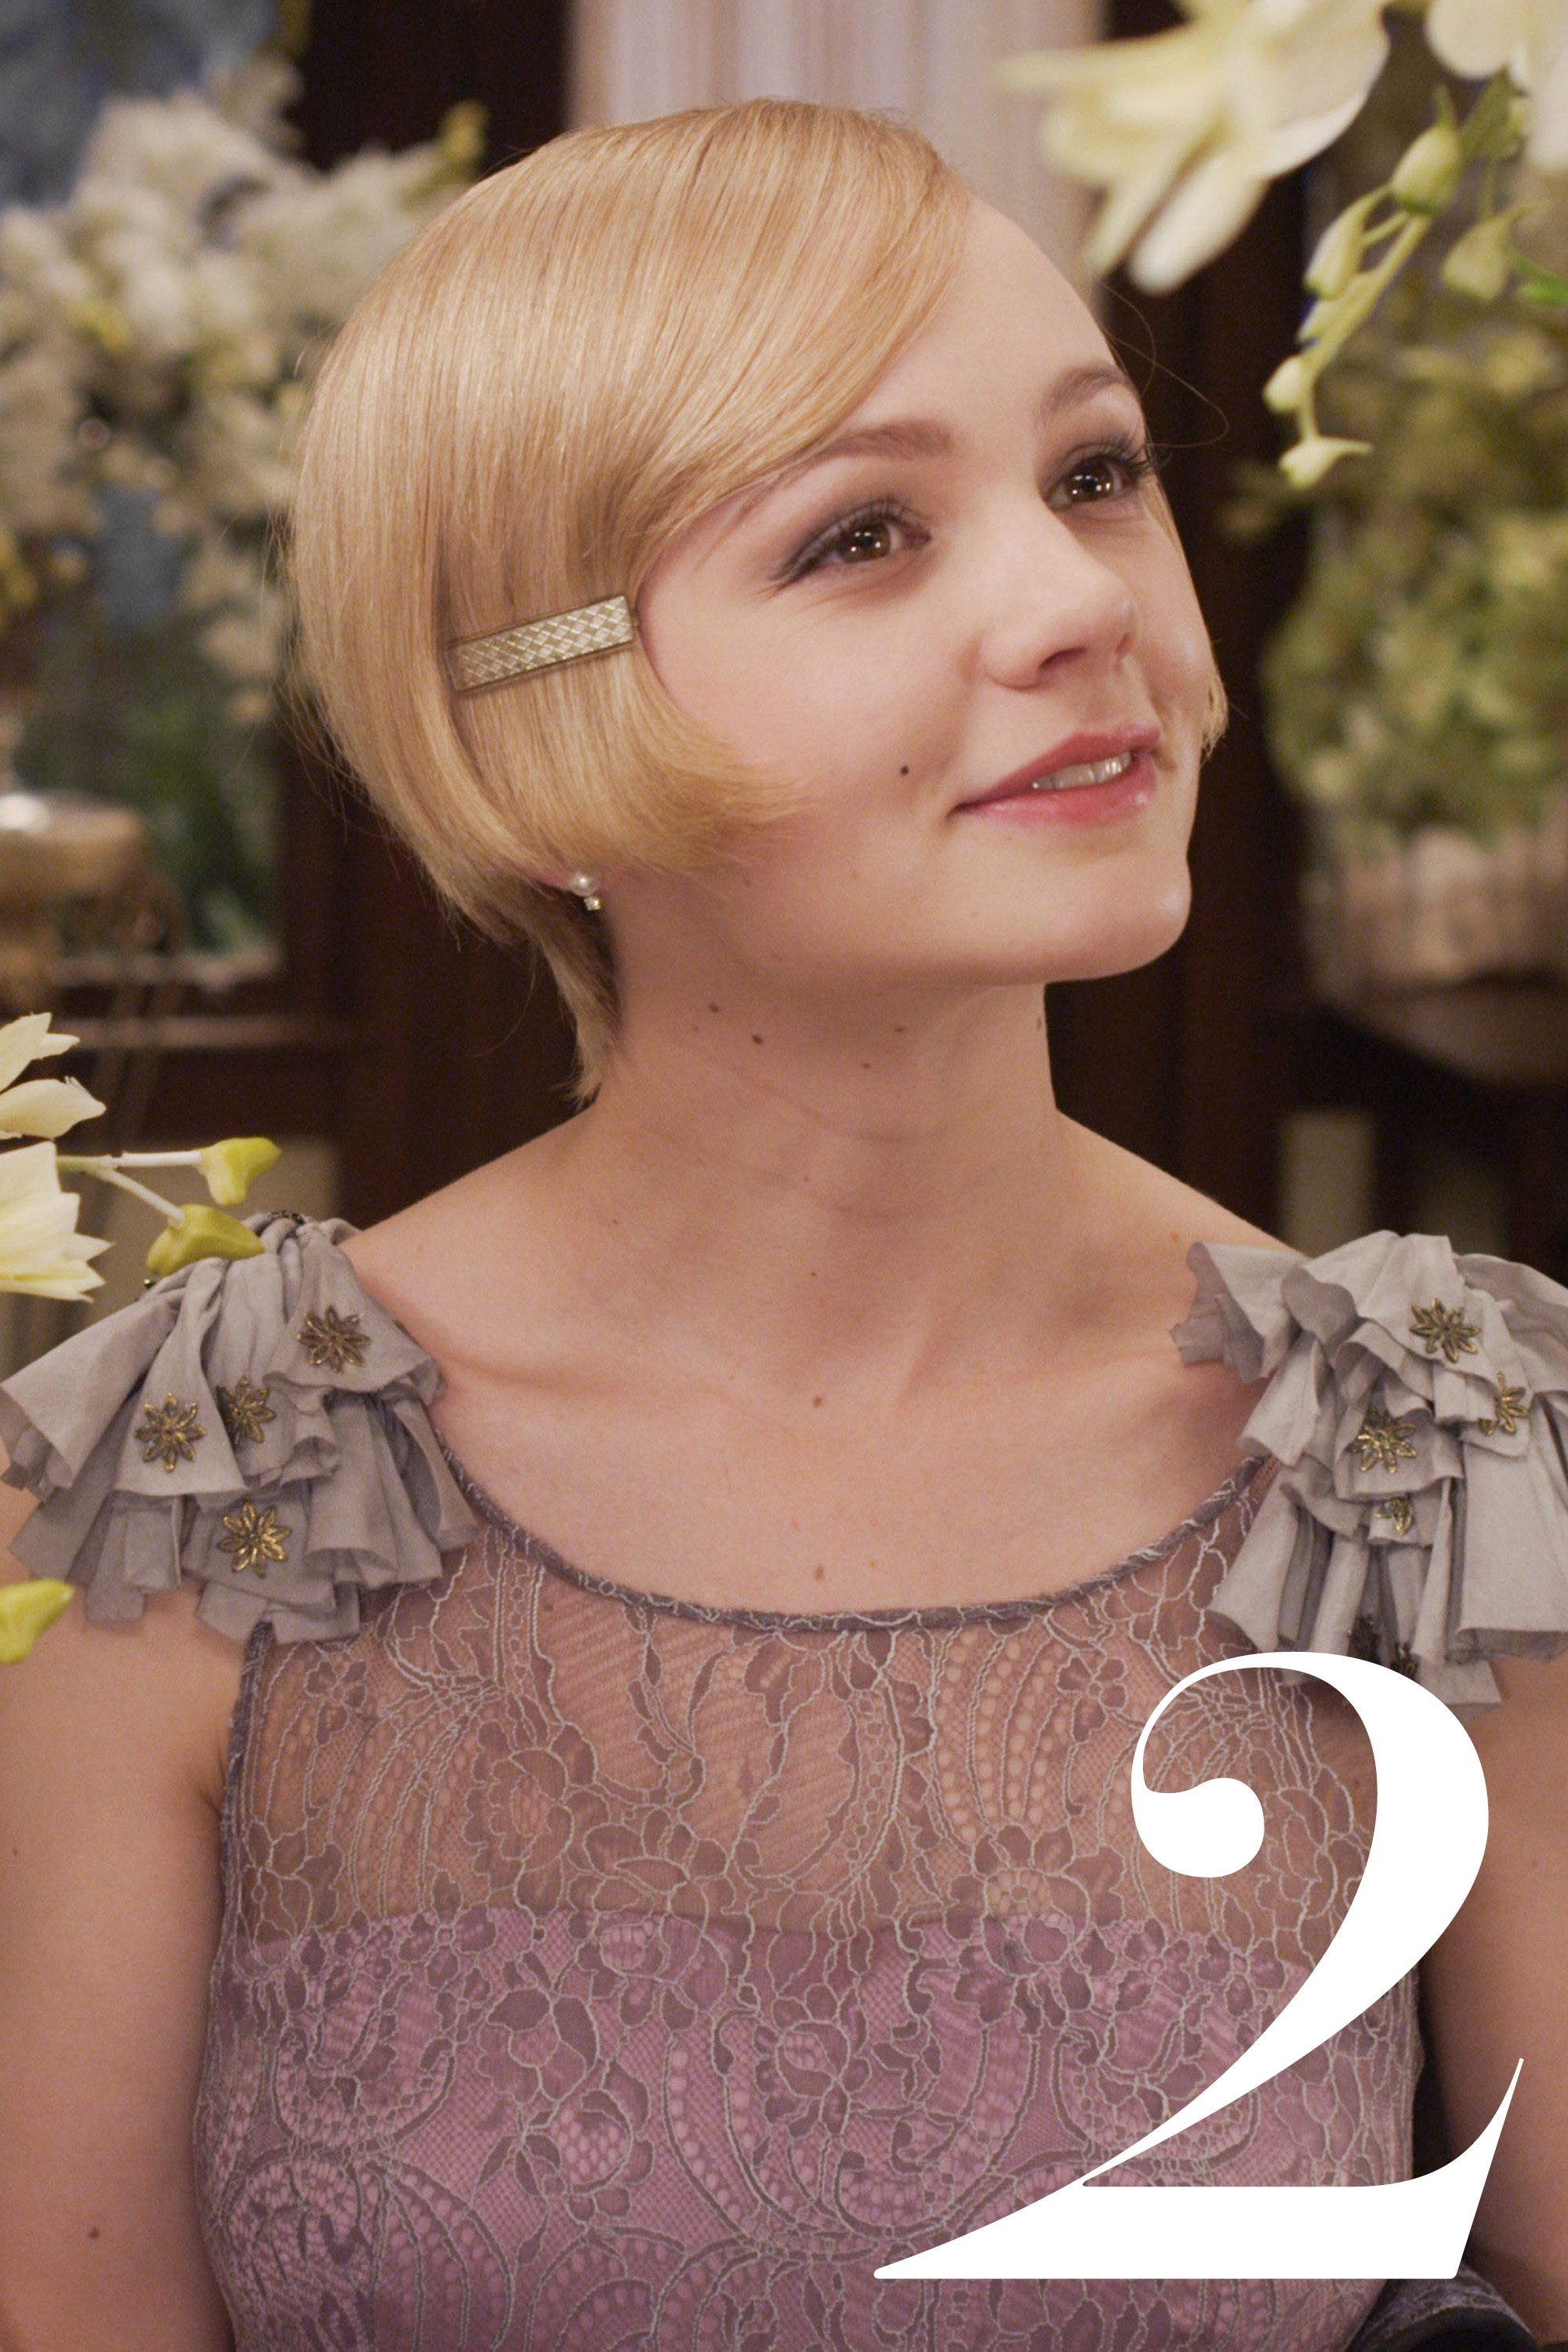 """CareyMulligan in <em>The Great Gatsby</em>  <strong>France Luxe</strong> Enamel Barrette, $24, <a href=""""http://shop.nordstrom.com/s/france-luxe-enamel-barrette/3503067?origin=category-personalizedsort&contextualcategoryid=0&fashionColor=CAMEL%2F+GOLD&resultback=1679"""">nordstrom.com</a>."""